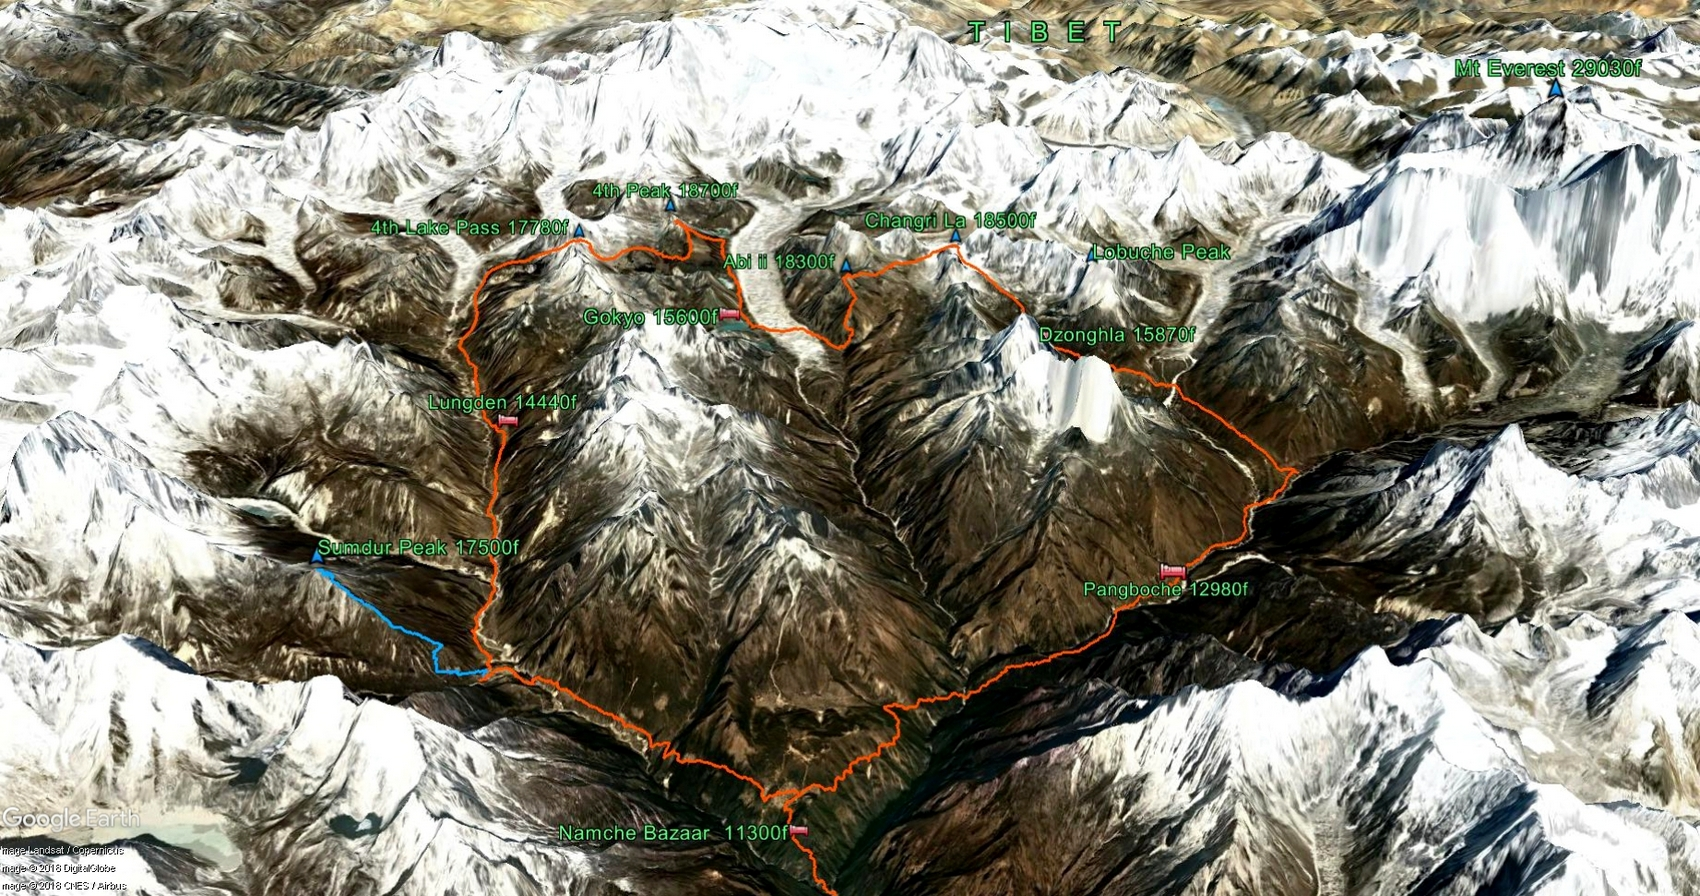 A Google Earth snapshot of the Everest View Explorer trekking route